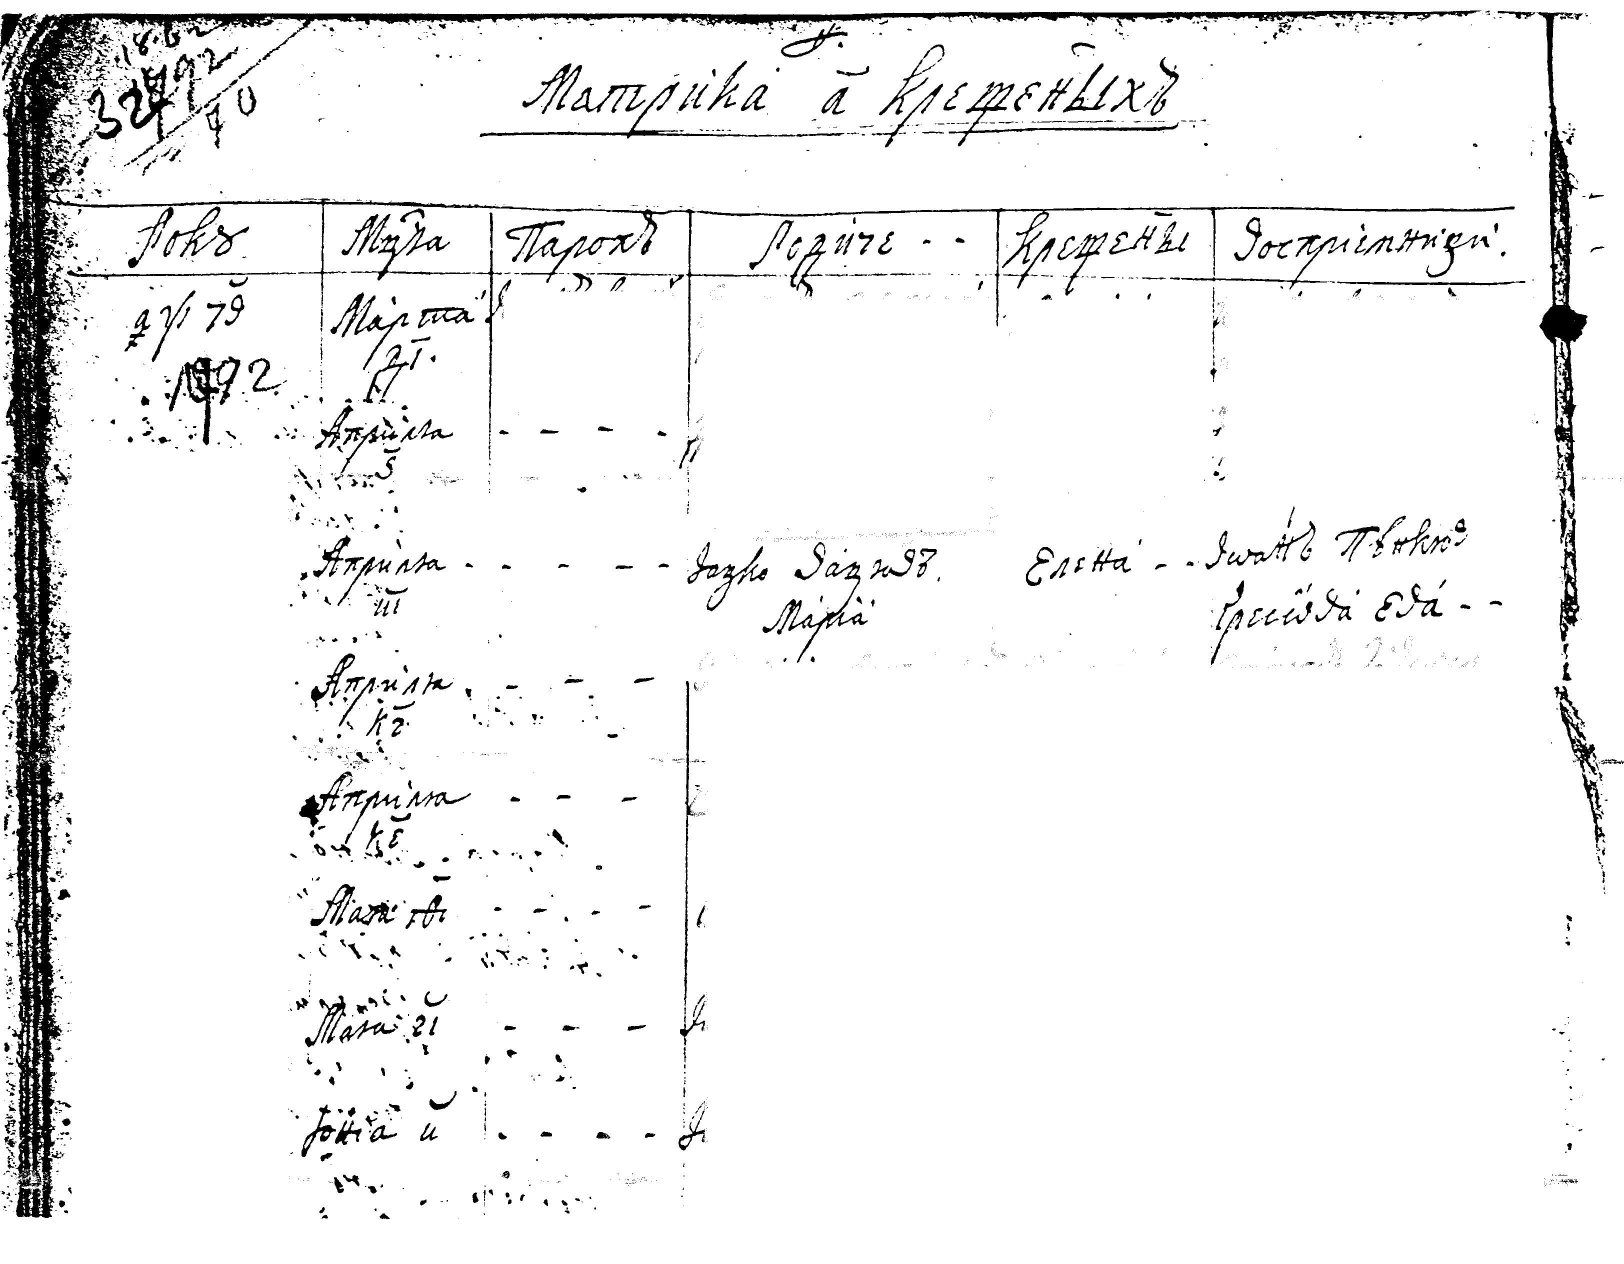 parochial birth record from 1792